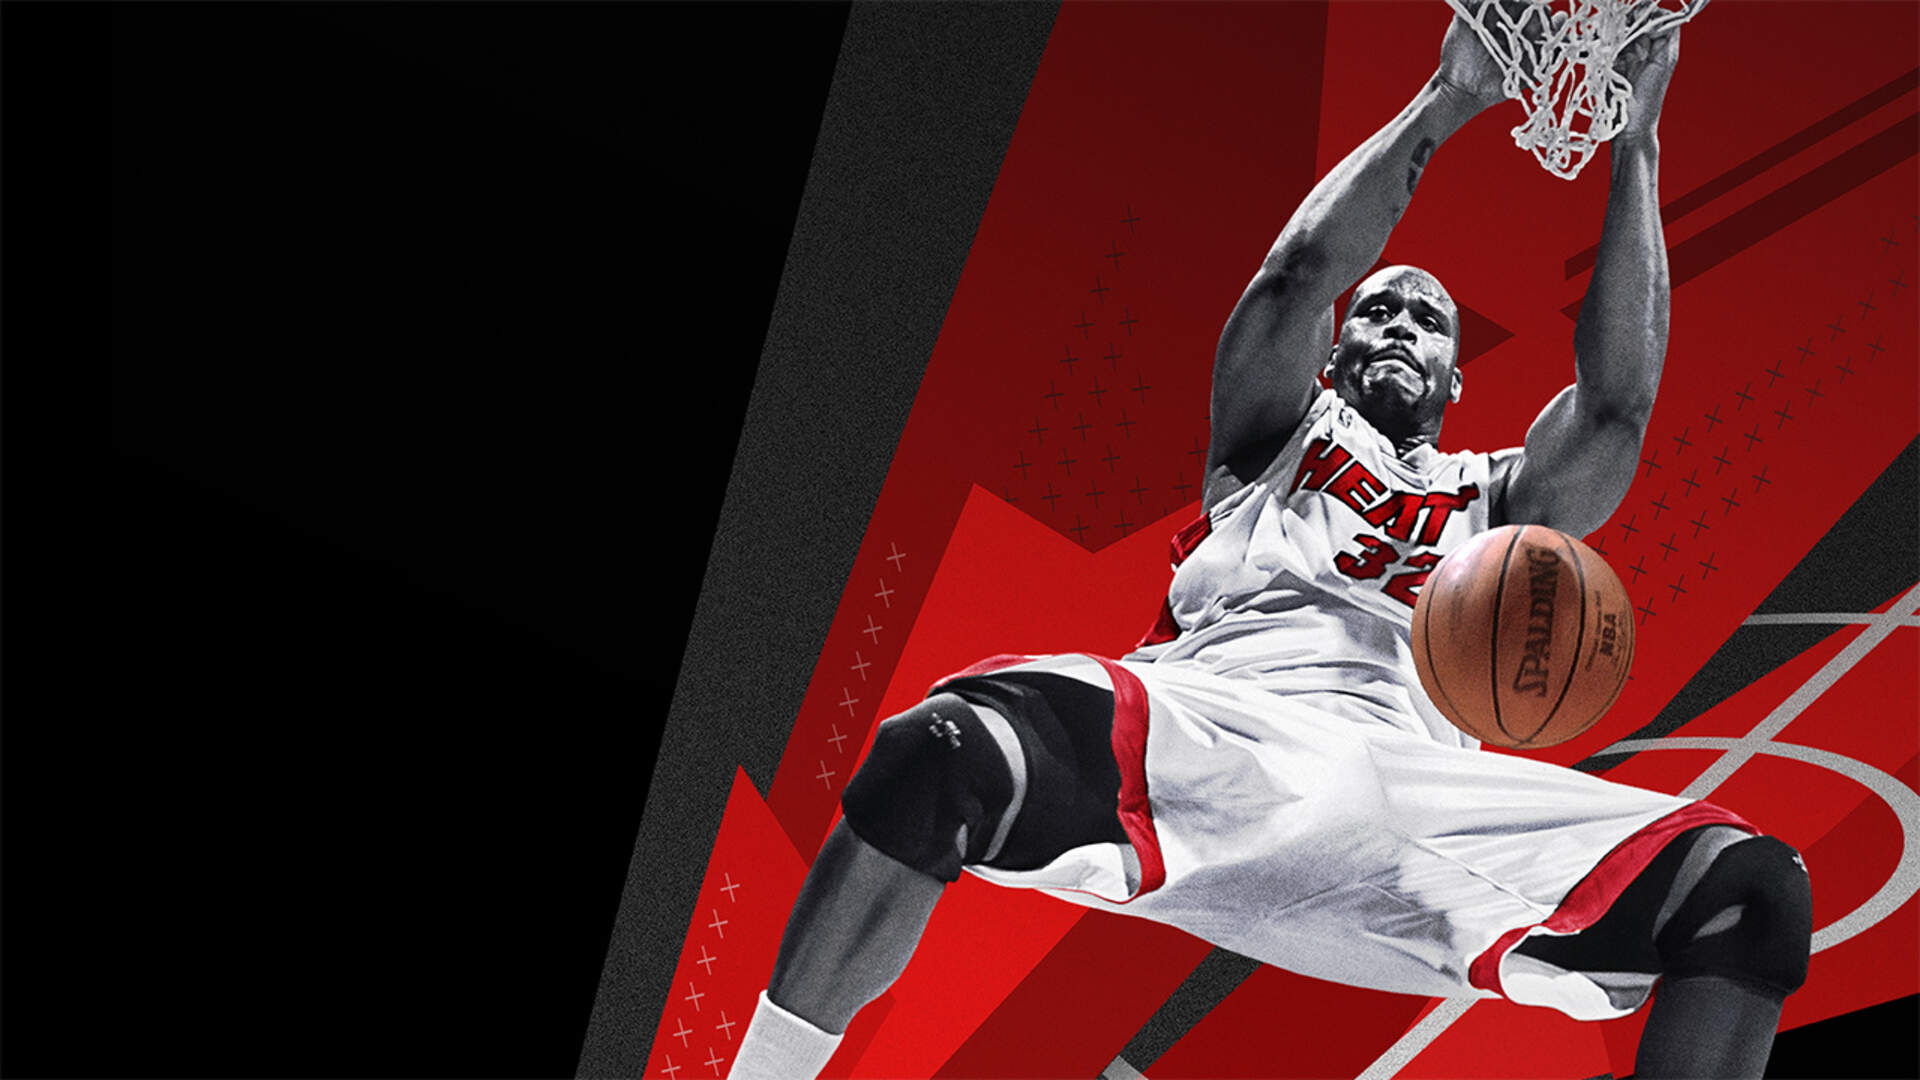 Nba 2k18 Ratings Guide All Time Rosters And Nba 2k18 Player Ratings For All 30 Teams Usgamer